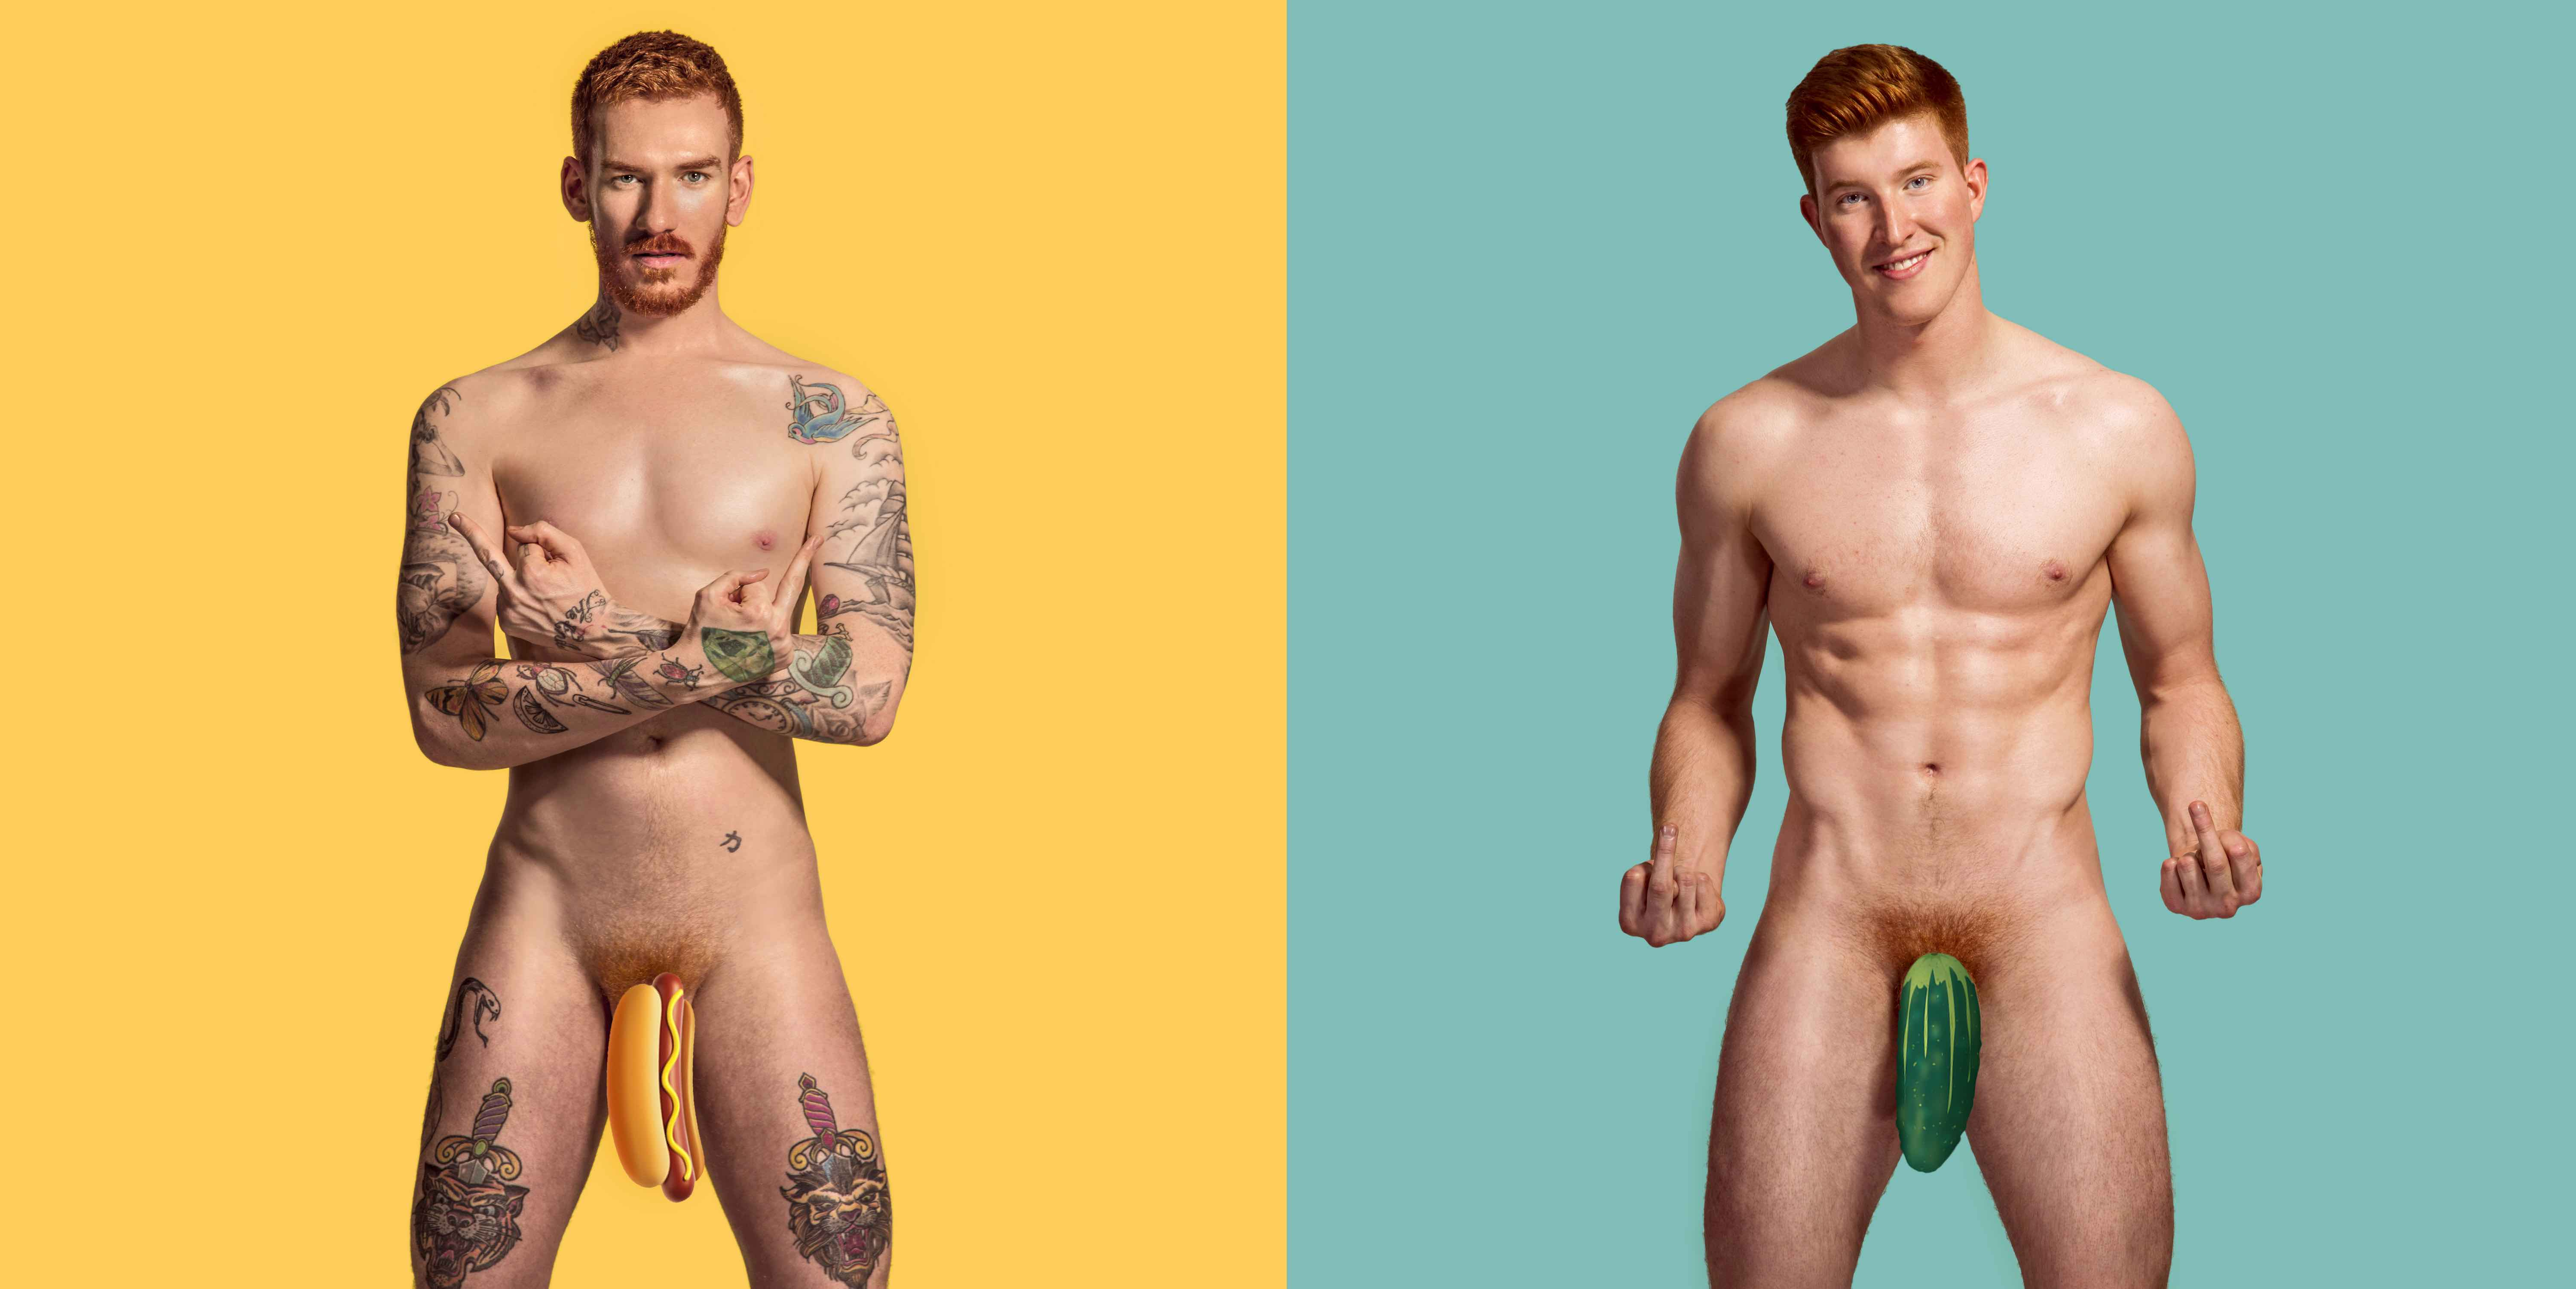 red hot cocks: 12 gingers model naked for testicular cancer awareness